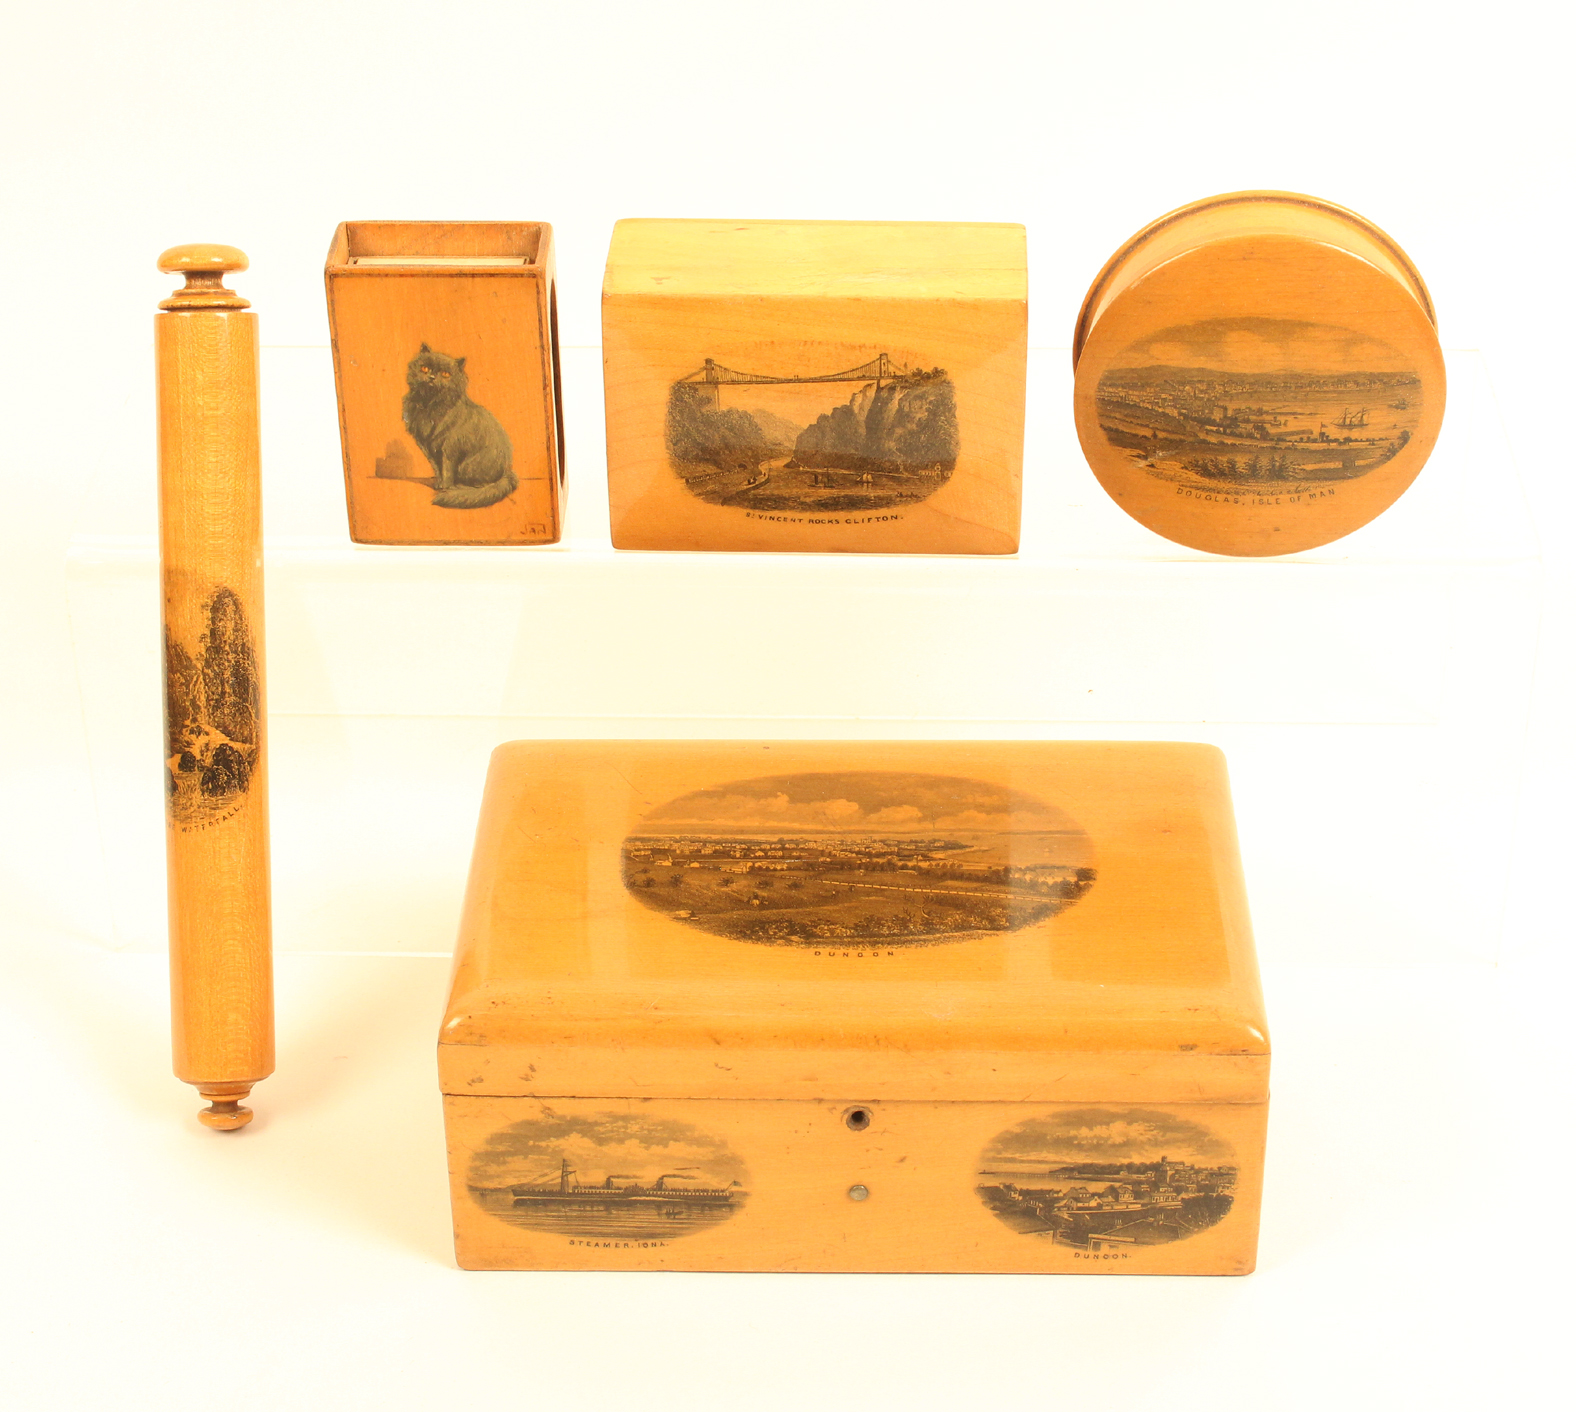 Mauchline ware - five pieces comprising a rectangular box (Dunoon/Steamer Iona/Dunoon) lacking